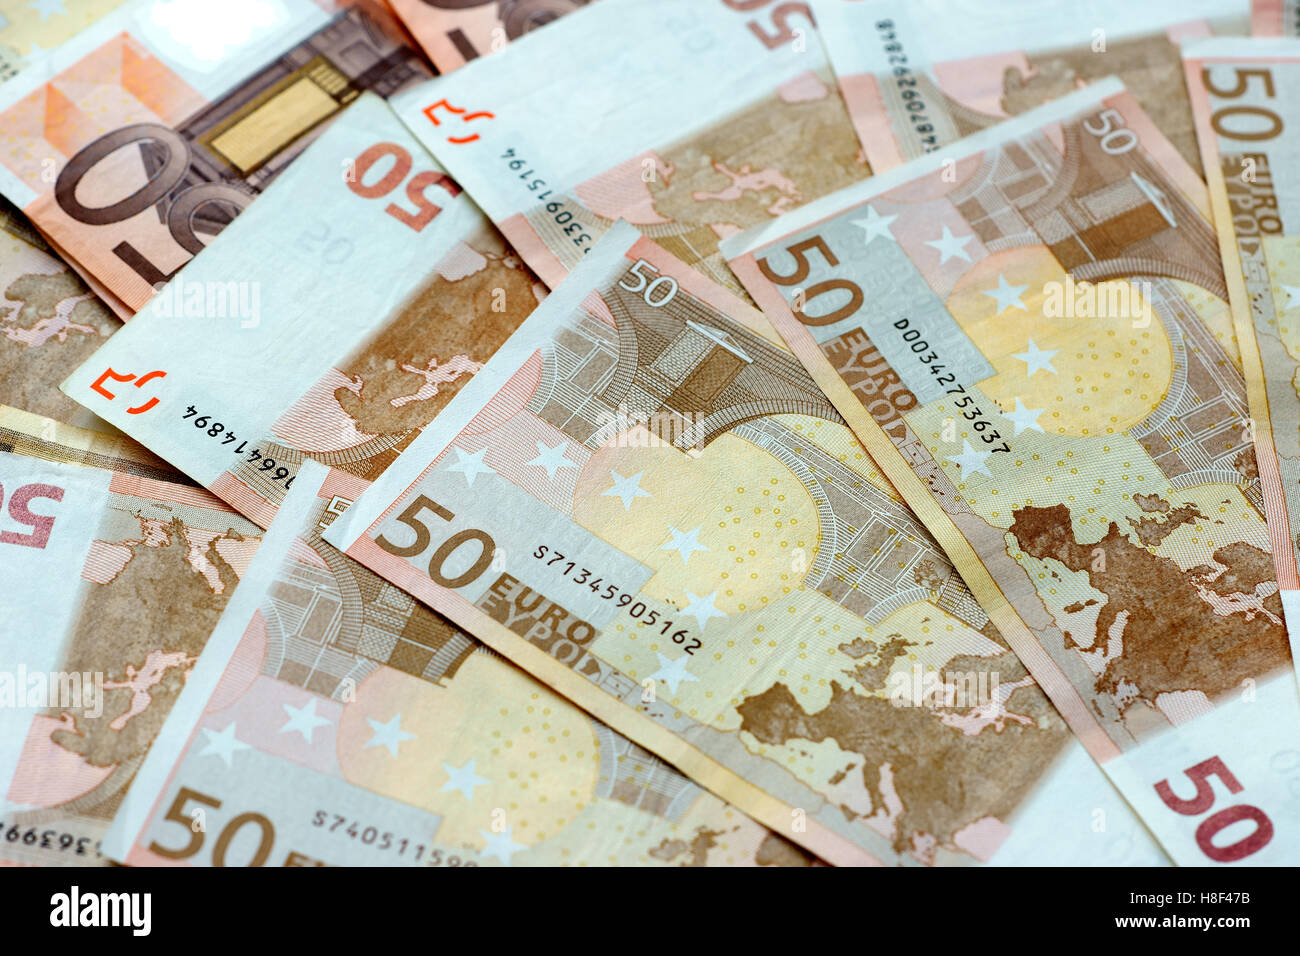 50 Euro Schein Falten Frosch Folding Money Stockfotos Folding Money Bilder Alamy